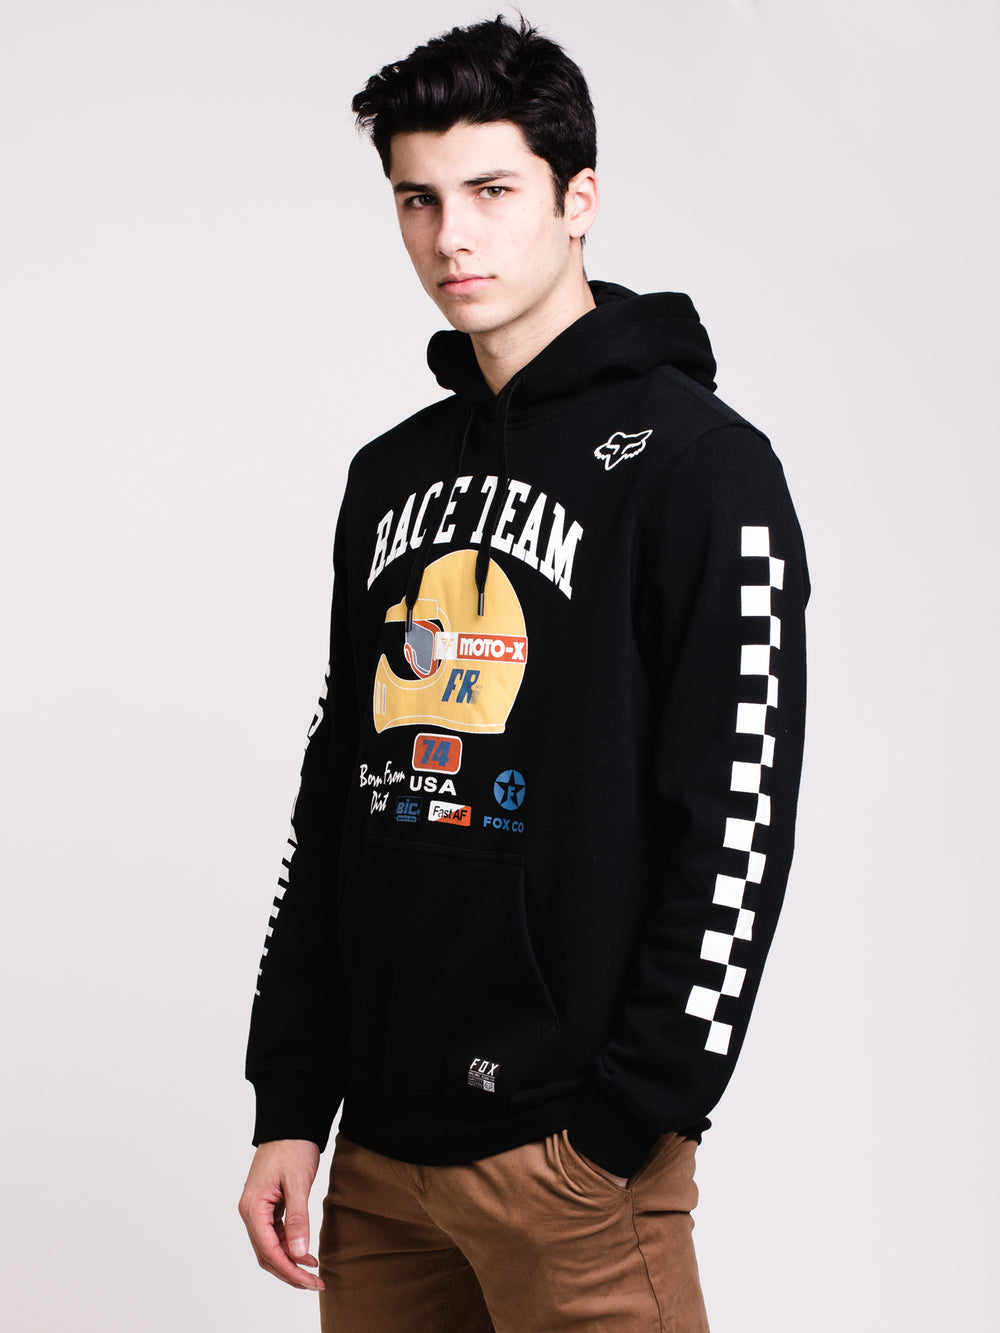 MENS SPEEDWAY PULL OVER HOODIE- BLACK - CLEARANCE